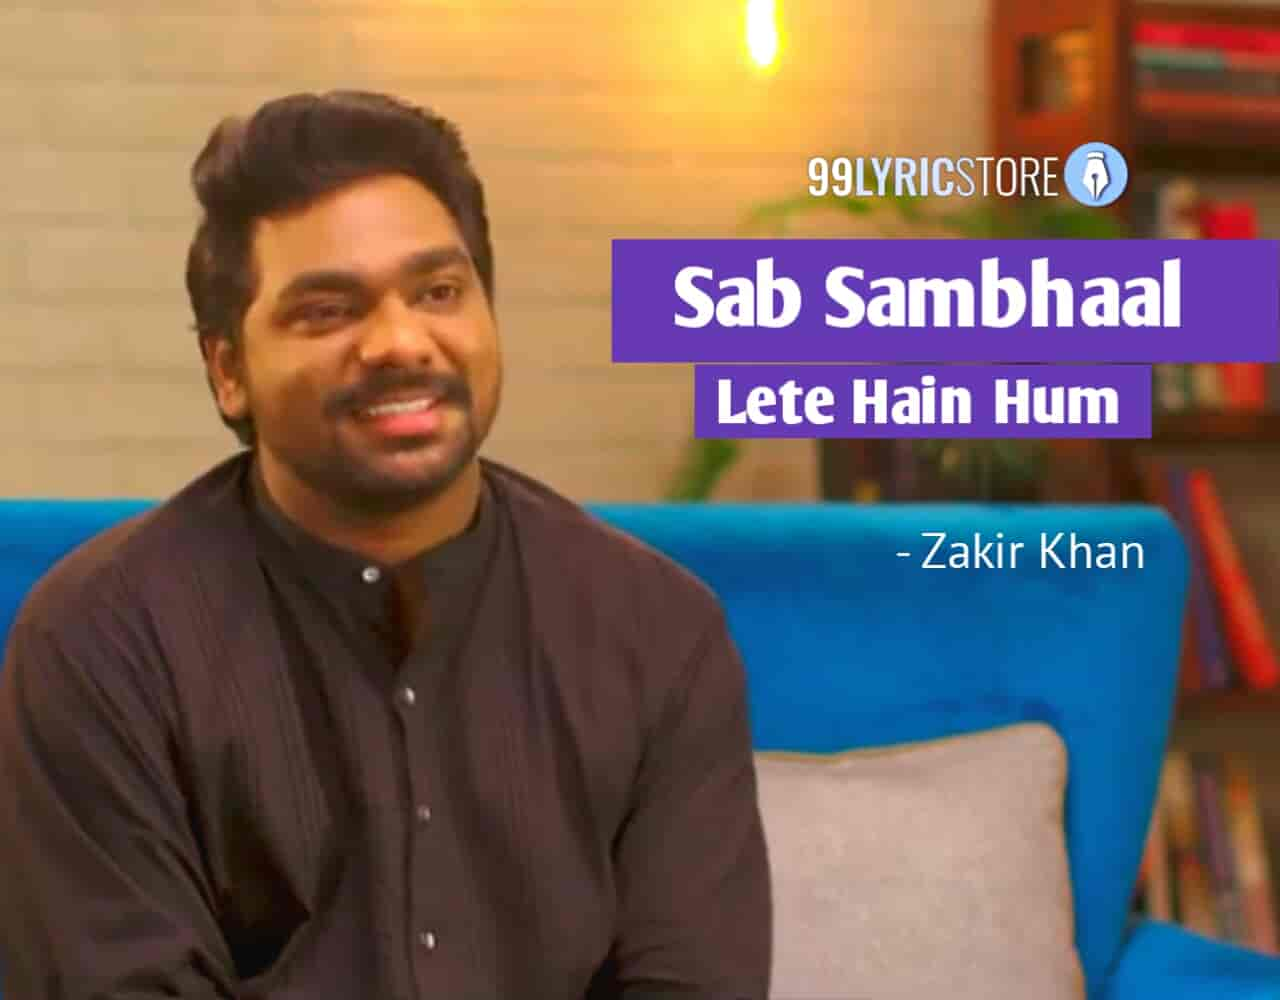 This beautiful Poetry 'Sab Sambhaal Lete Hain Hum' has written and performed by Zakir Khan.